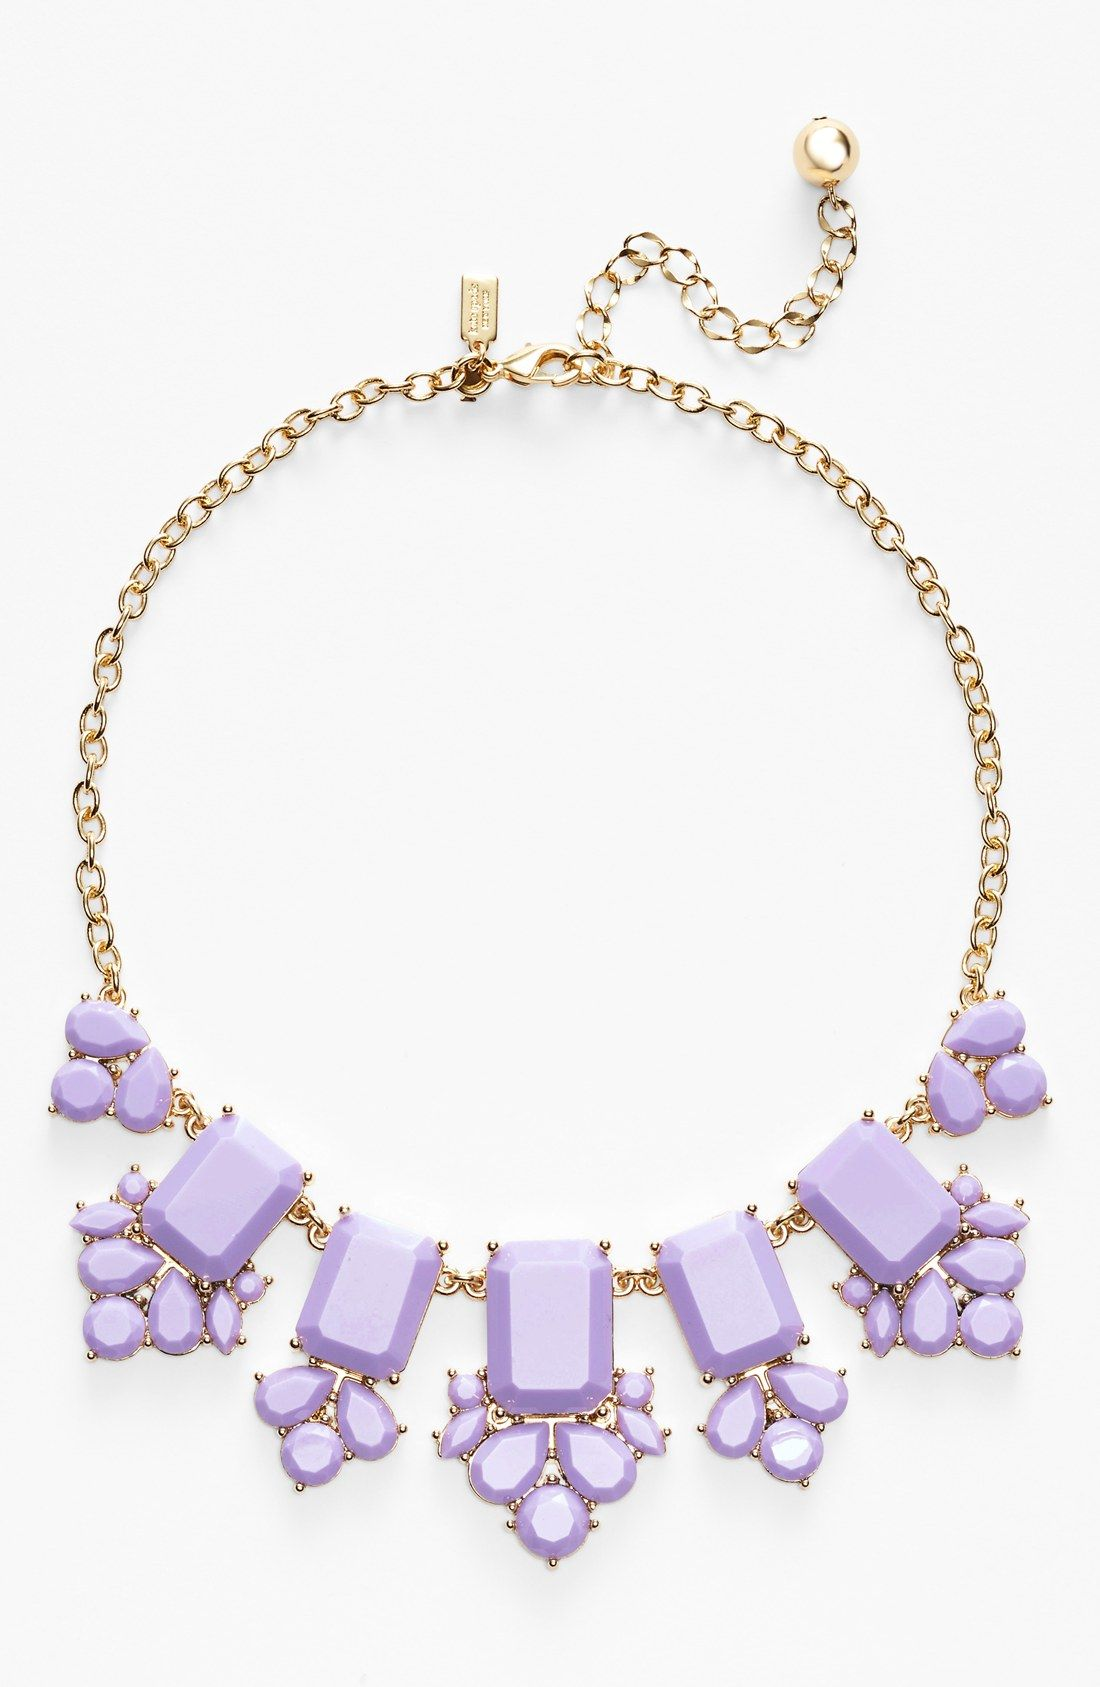 In love with this Lilac Kate Spade statement necklace! || ケイト・スペードのライラックカラーネックレス